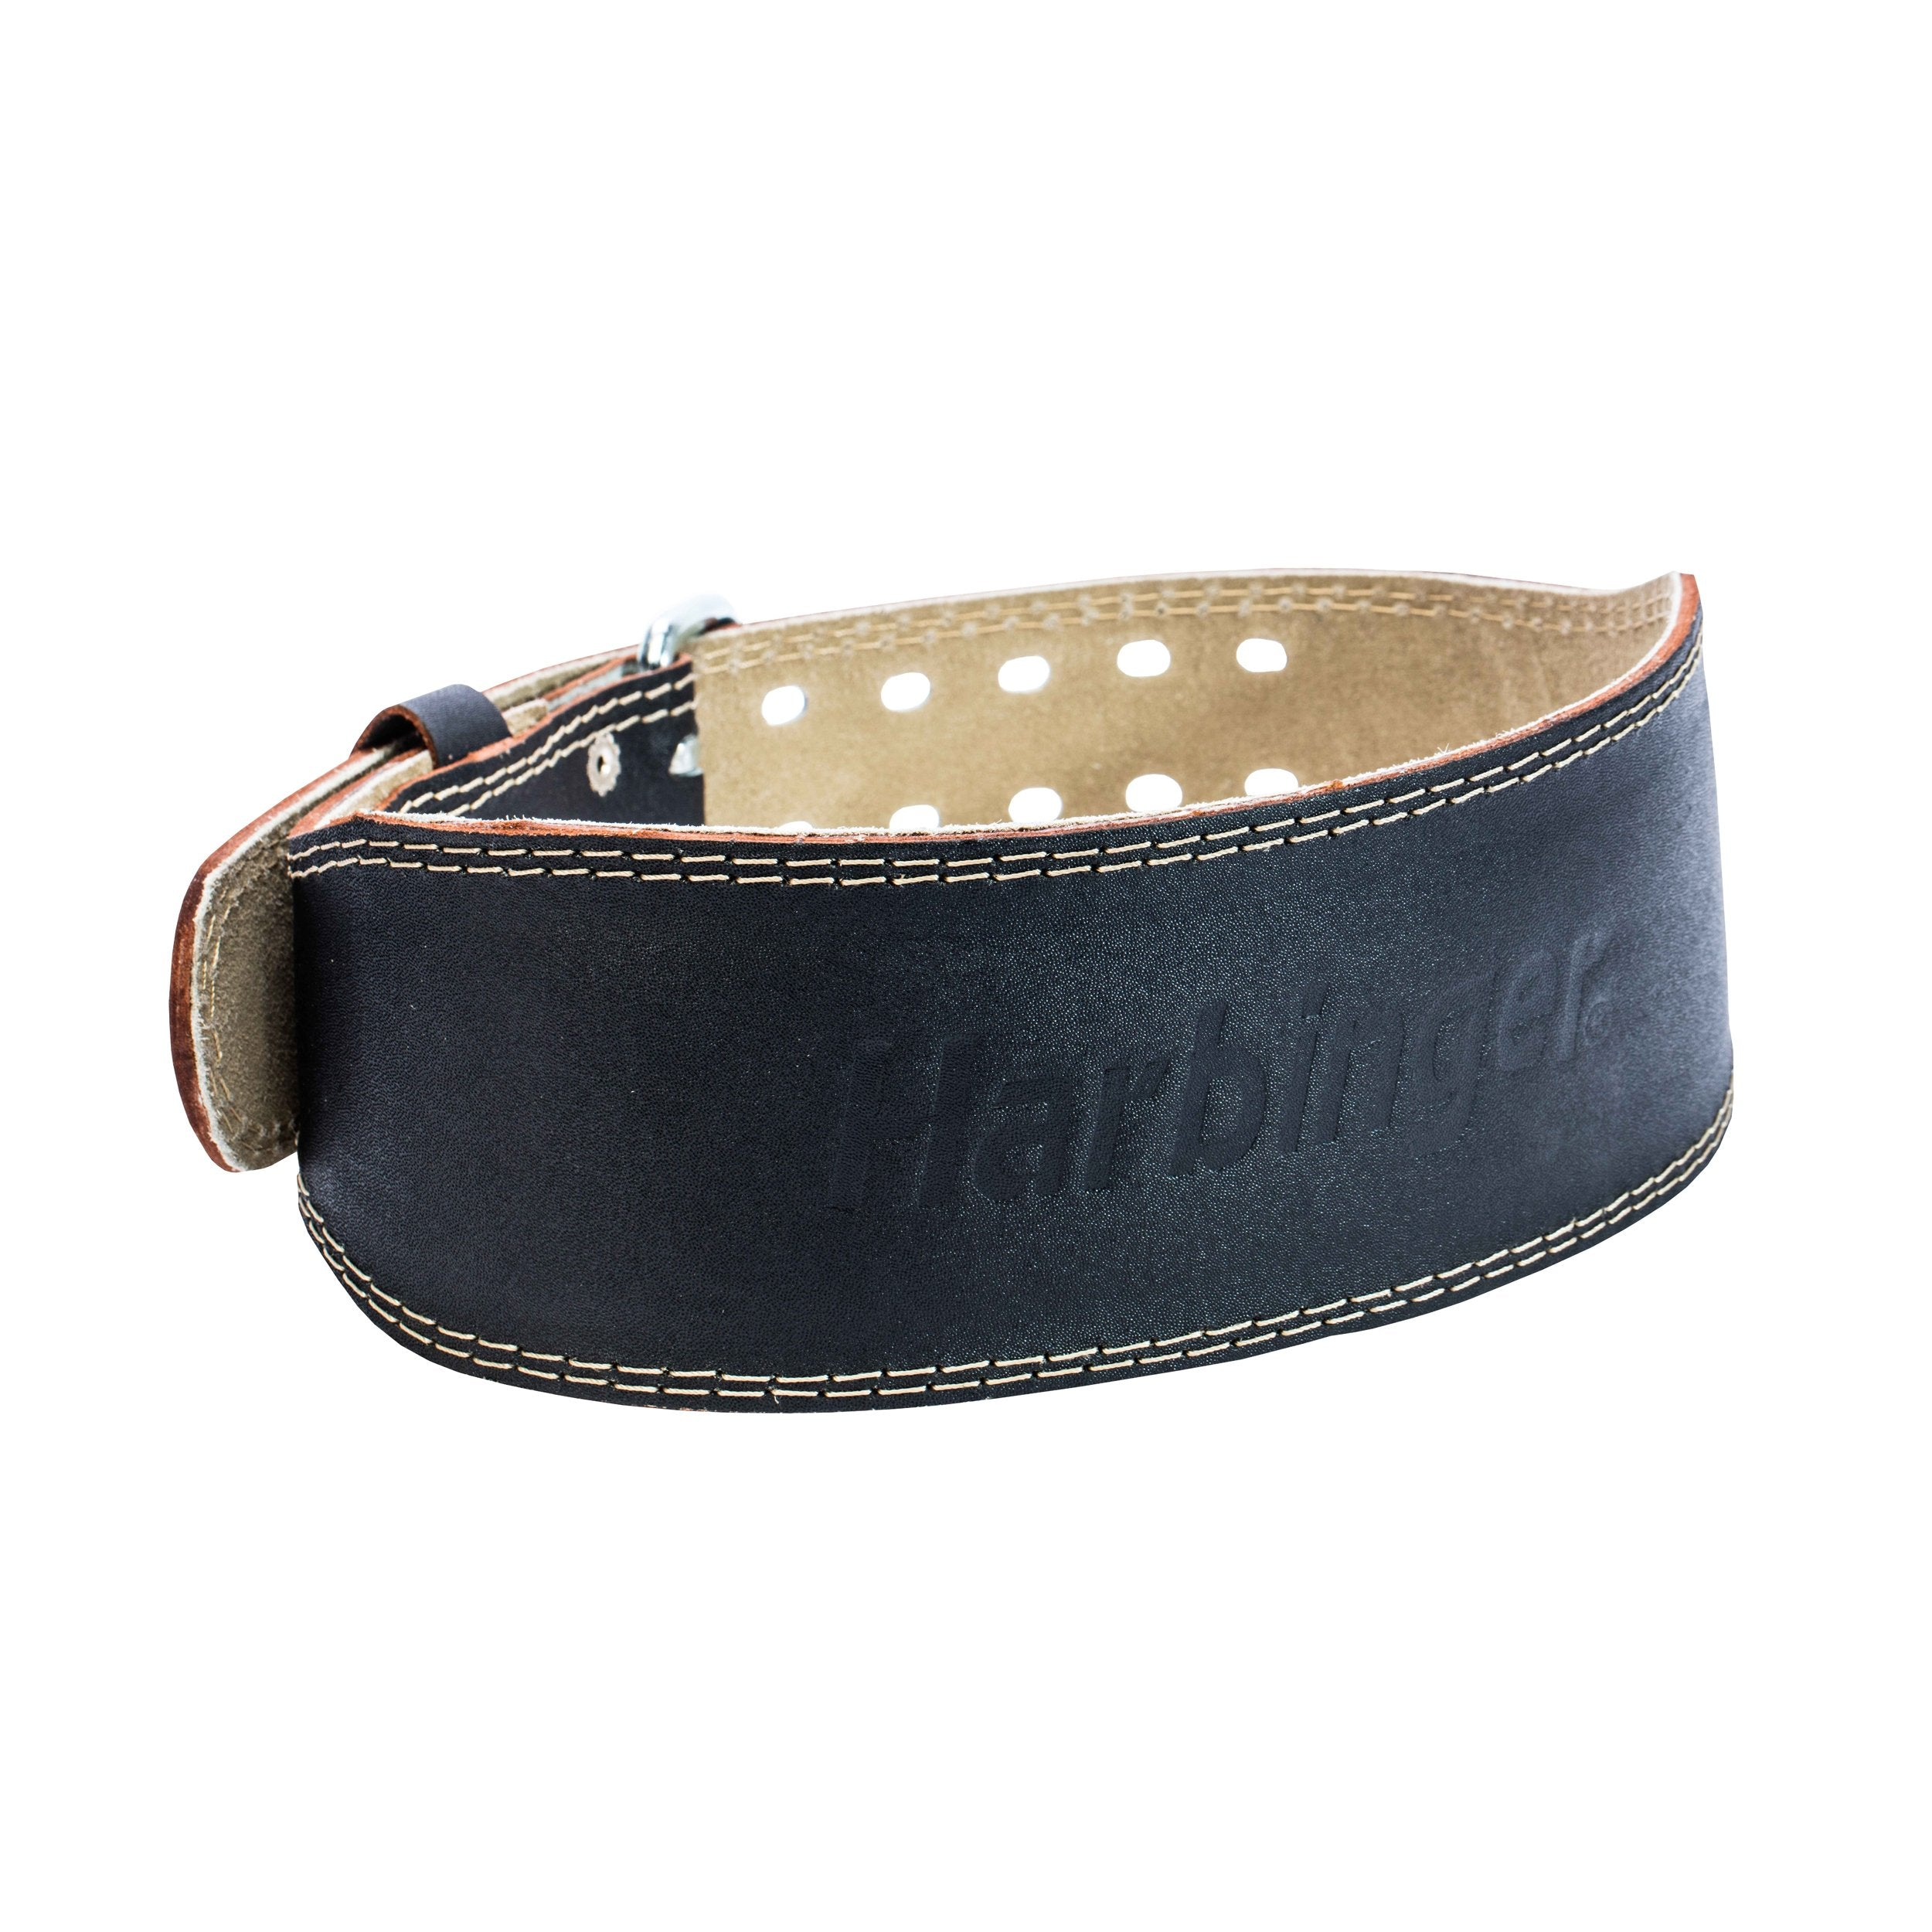 Harbinger Padded Leather Contoured Weightlifting Belt with Suede Lining and Steel Roller Buckle, 4-Inch, Large